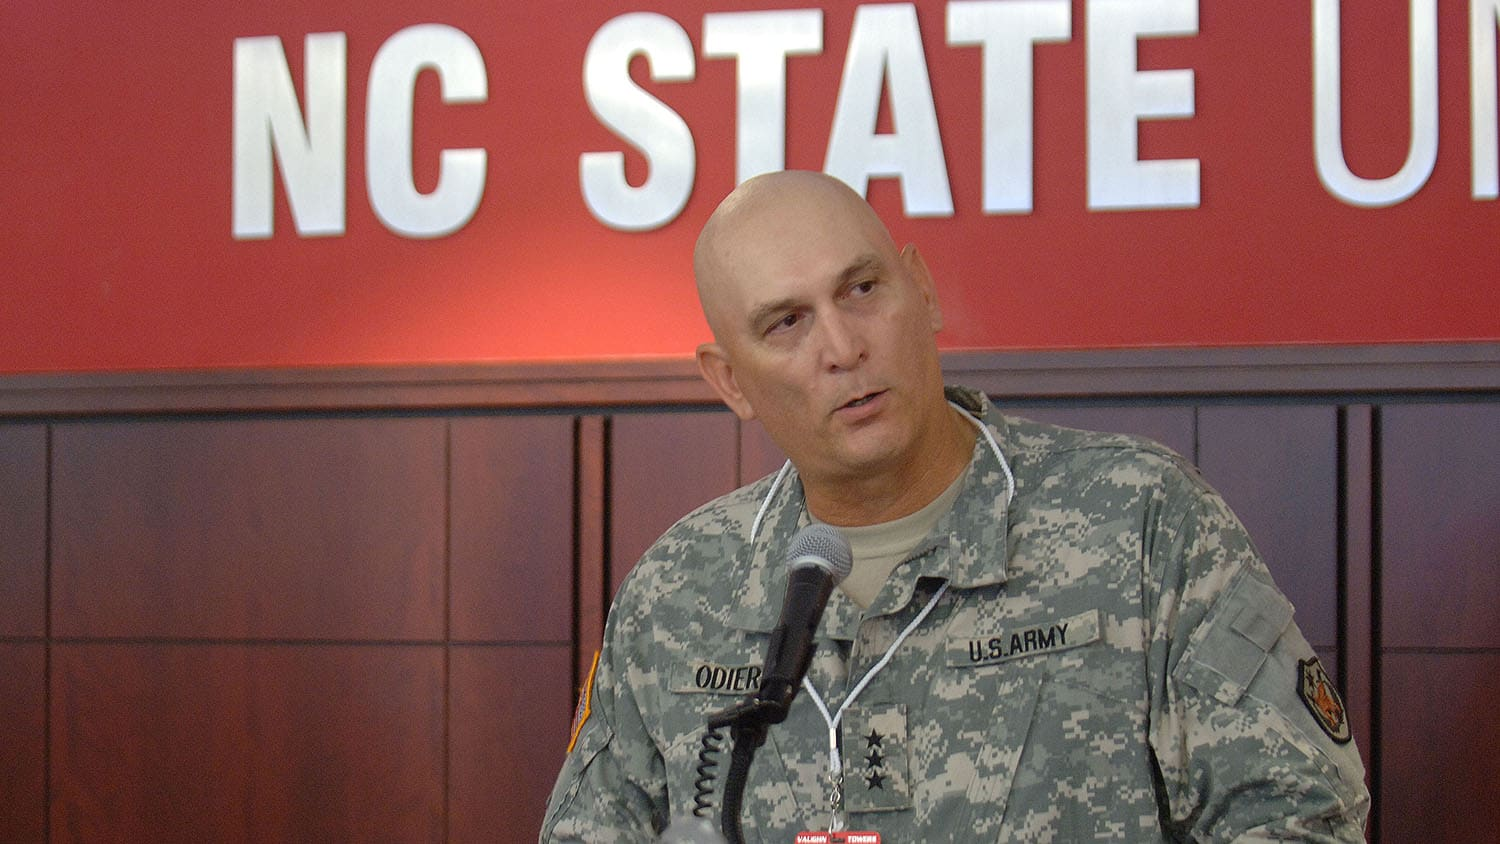 Ray Odierno seated with large sign behind him reading NC State.